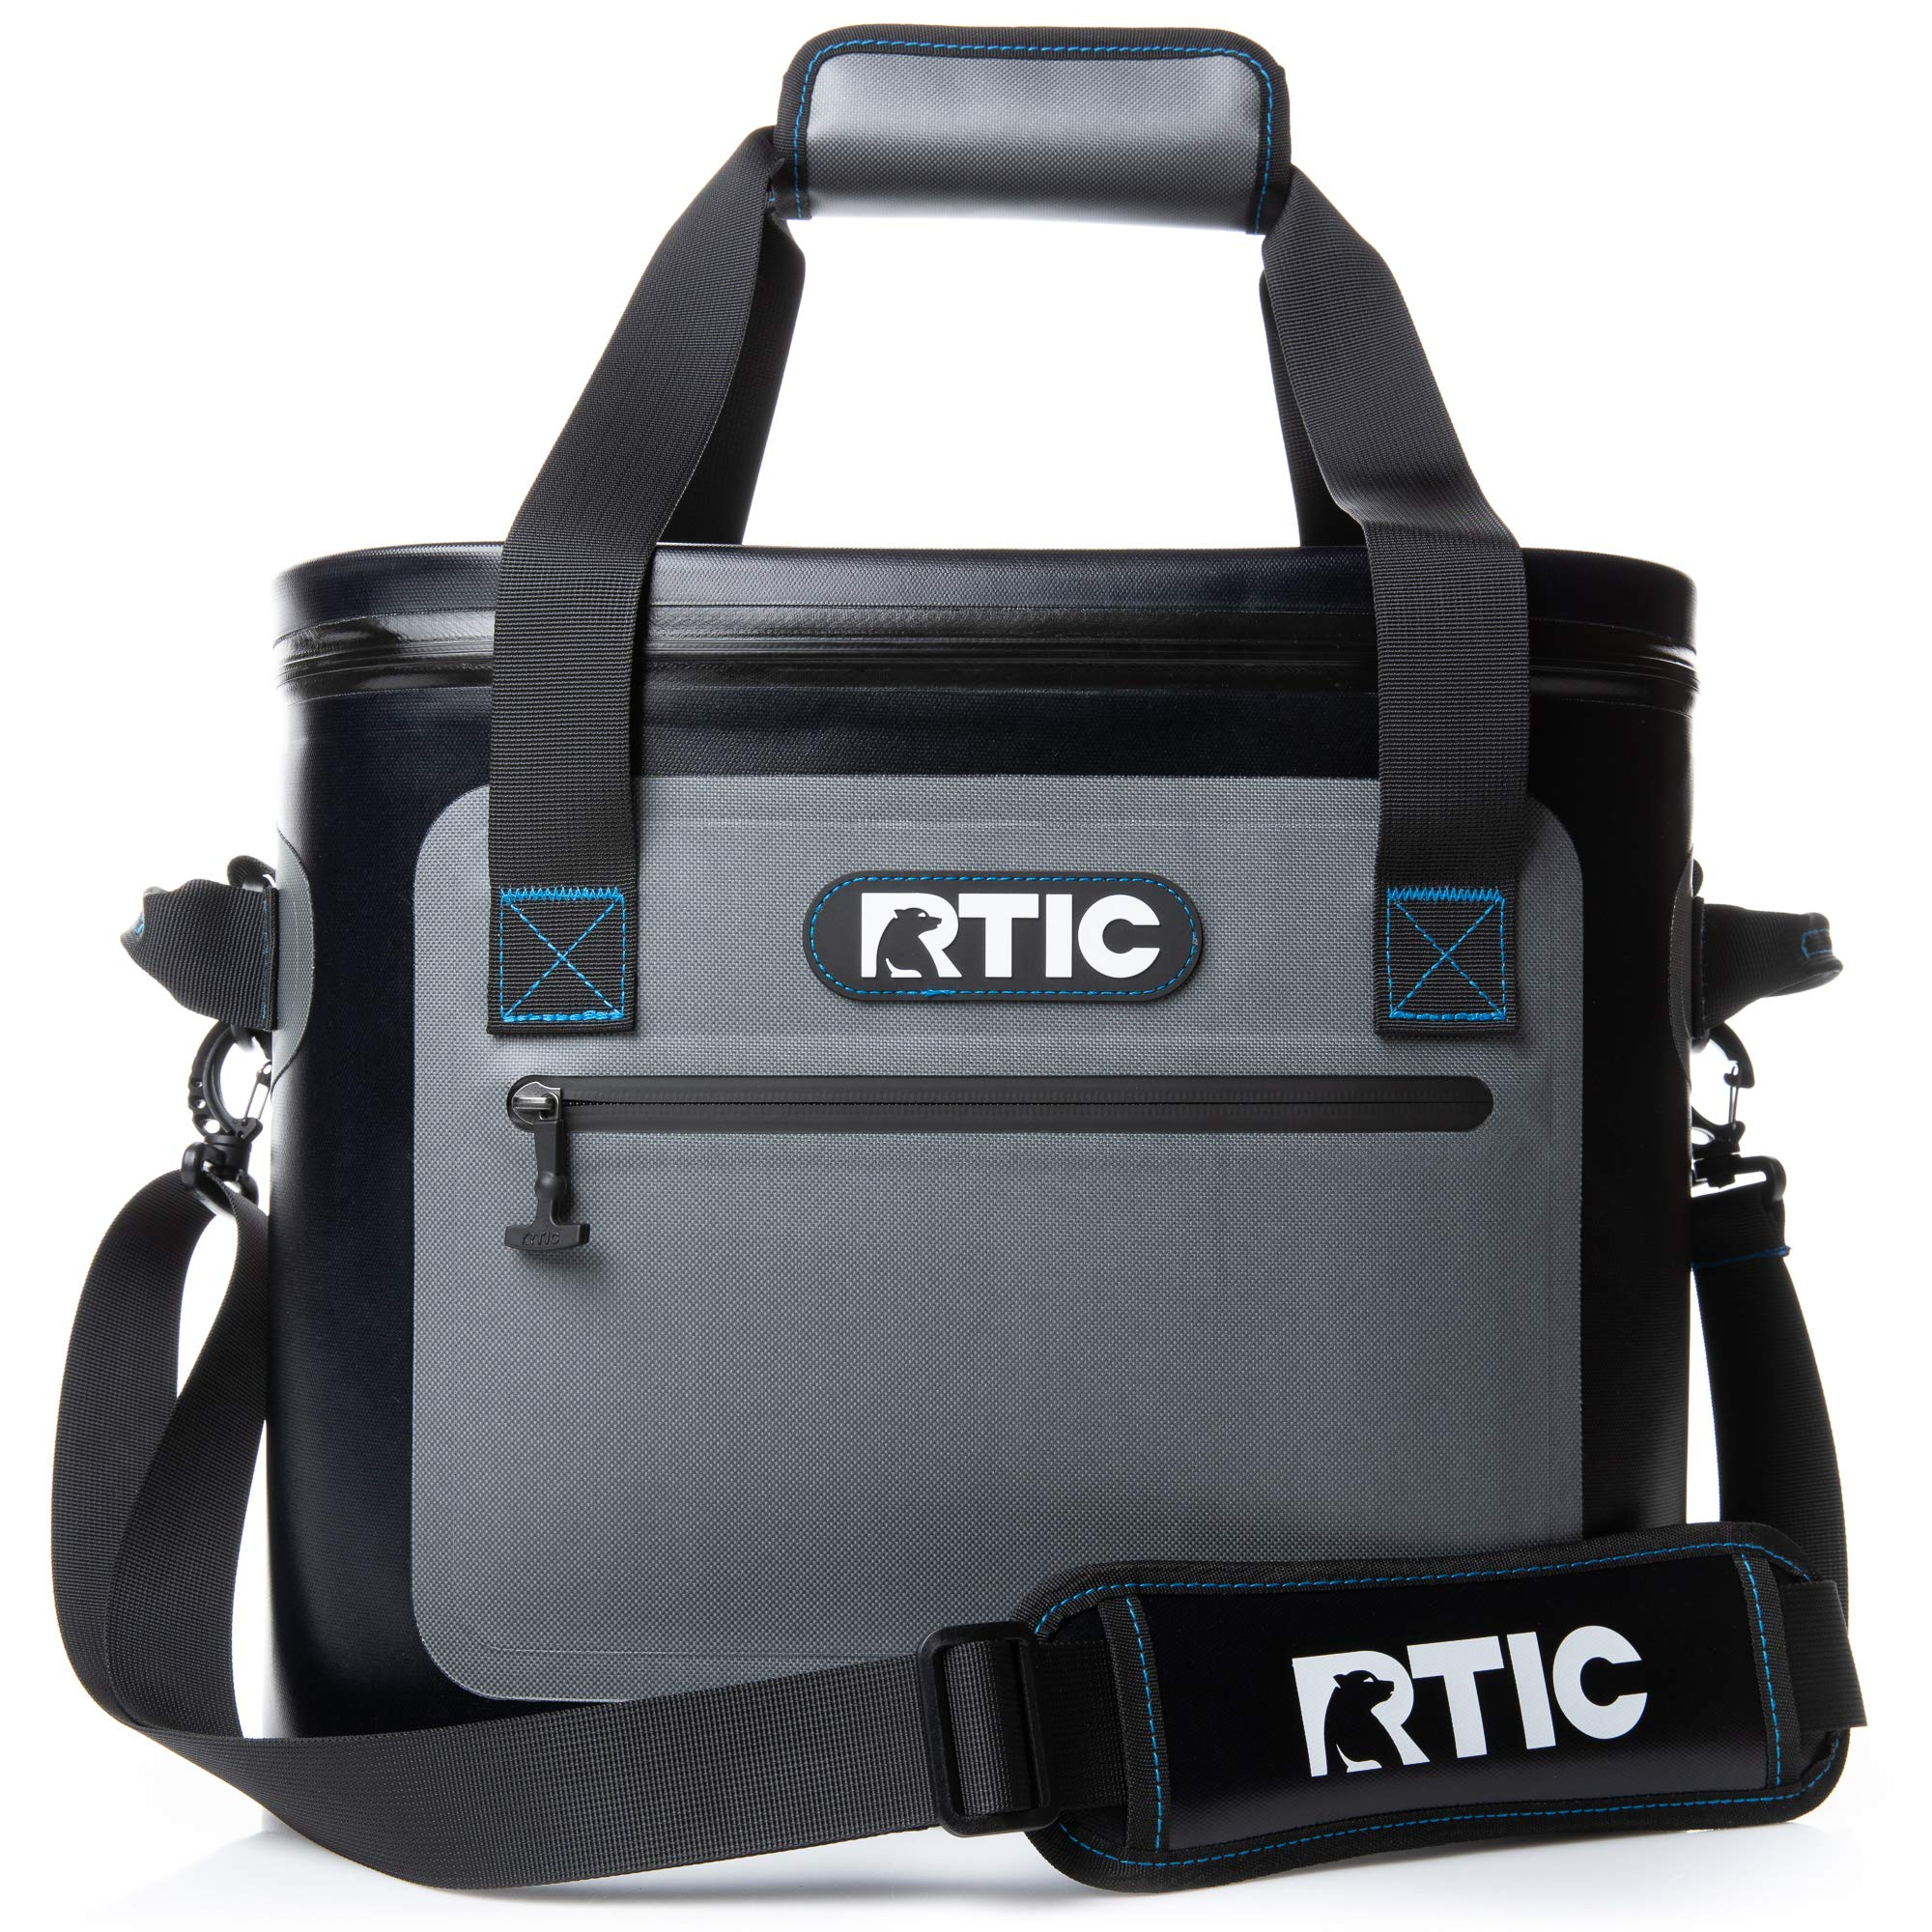 RTIC Soft Pack 30, Grey by RTIC